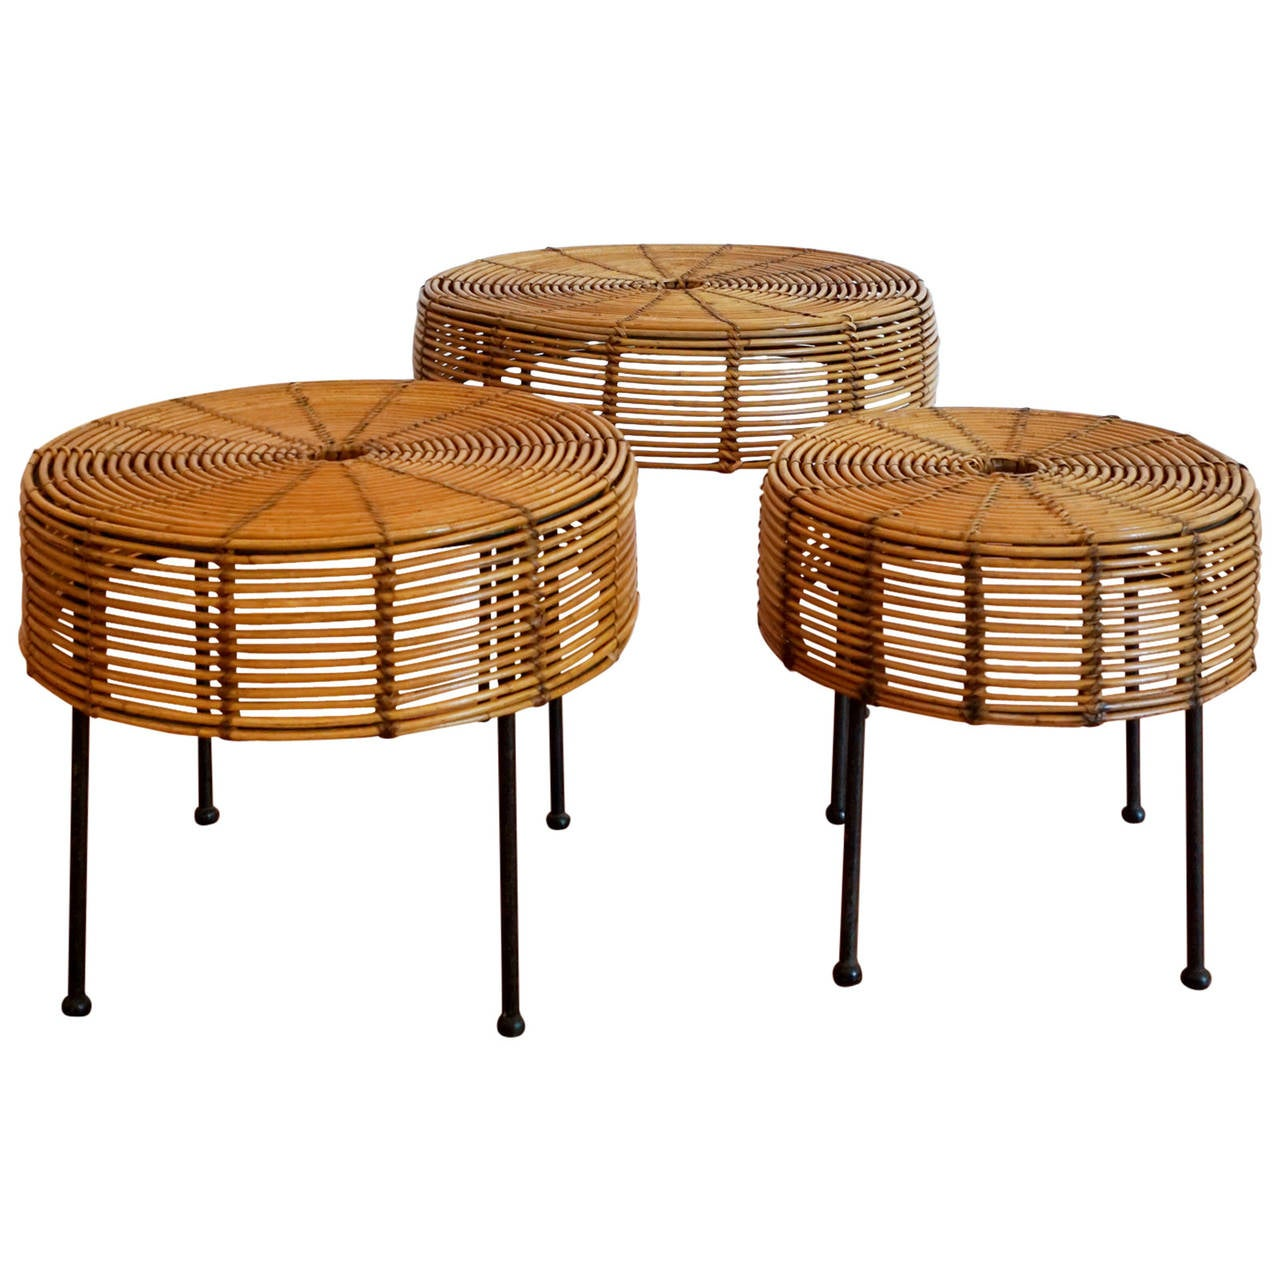 Rattan Nesting Tables ~ John risley wicker and iron nesting tables at stdibs